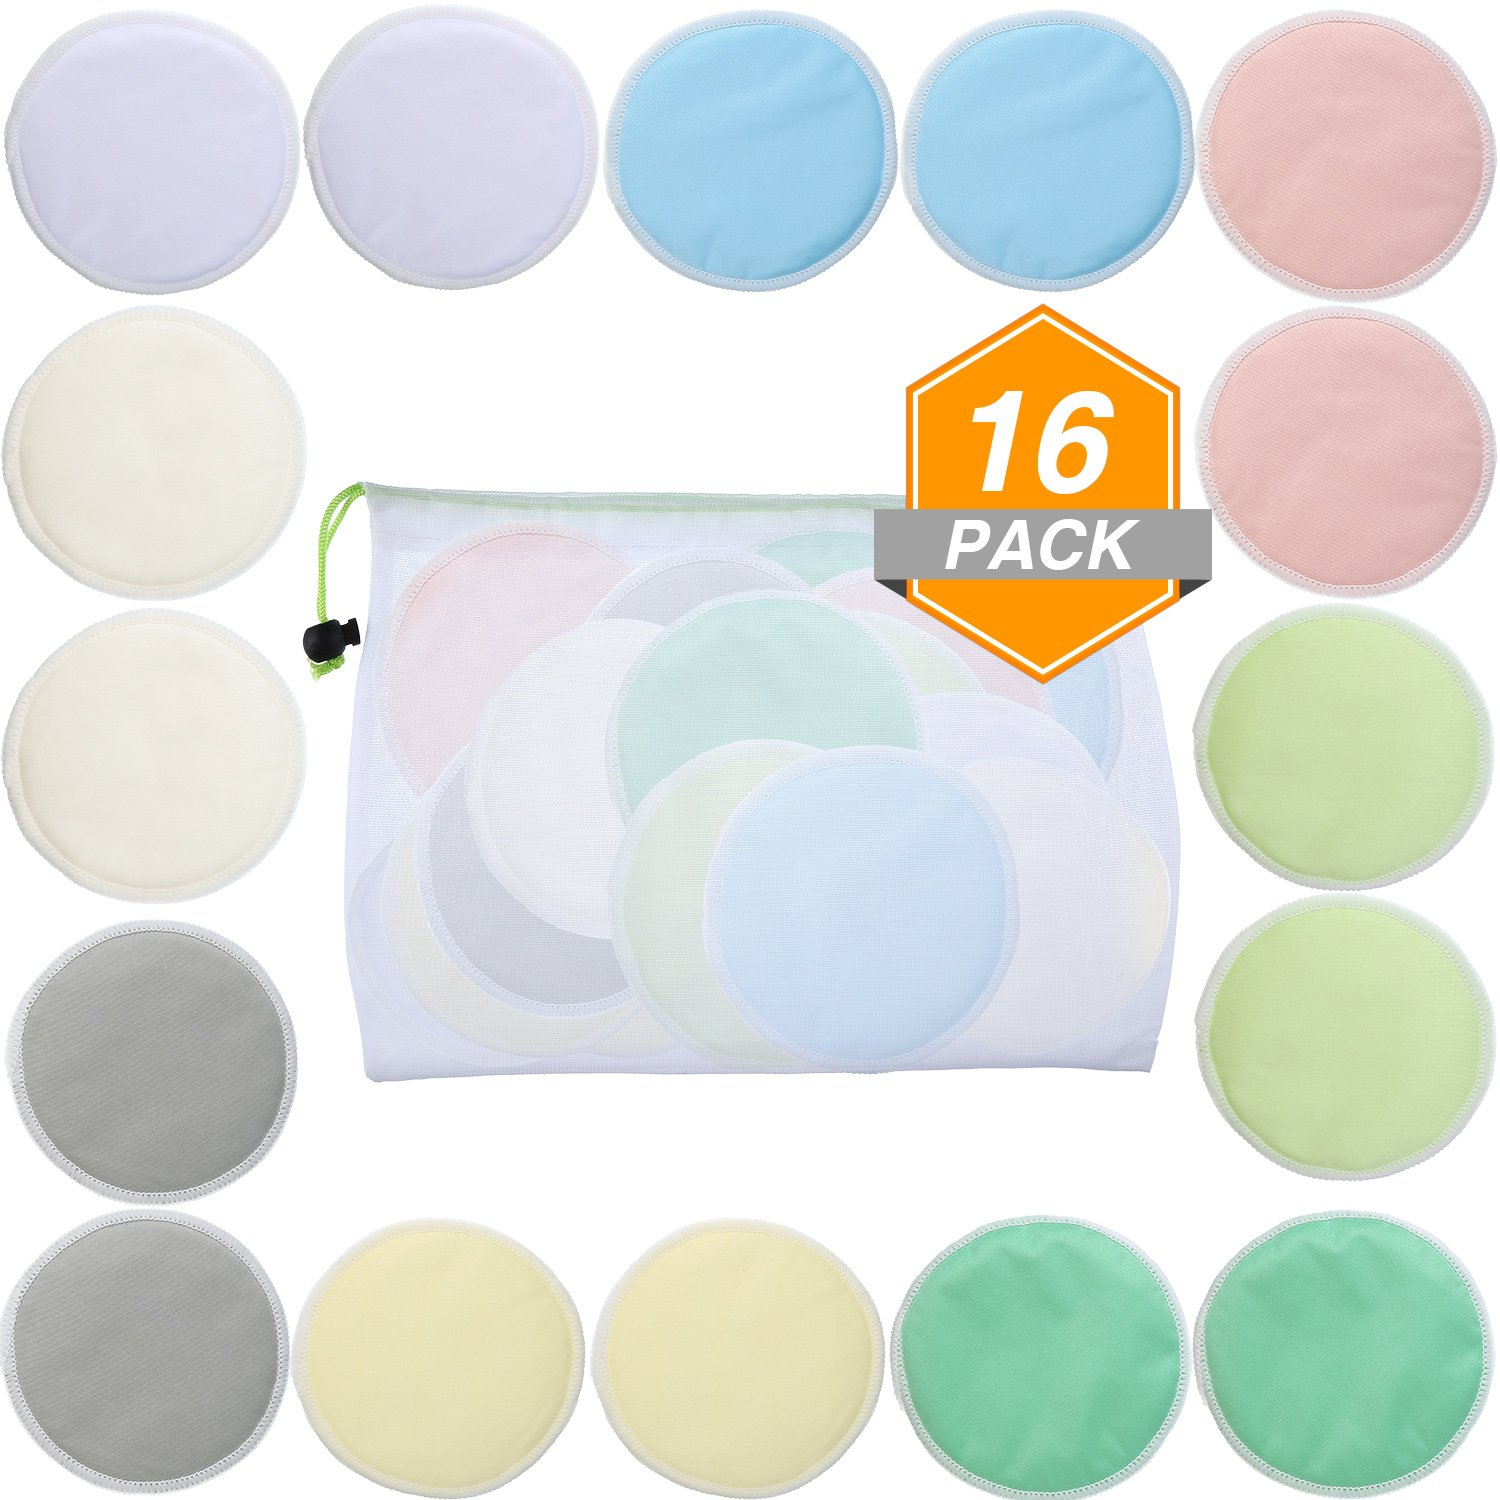 16 Pieces Bamboo Makeup Remover Pads Soft Face Clean Pads Facial Clean Skin Care Wash Cloth Pad with Mesh Bag, Assorted Colors Gejoy